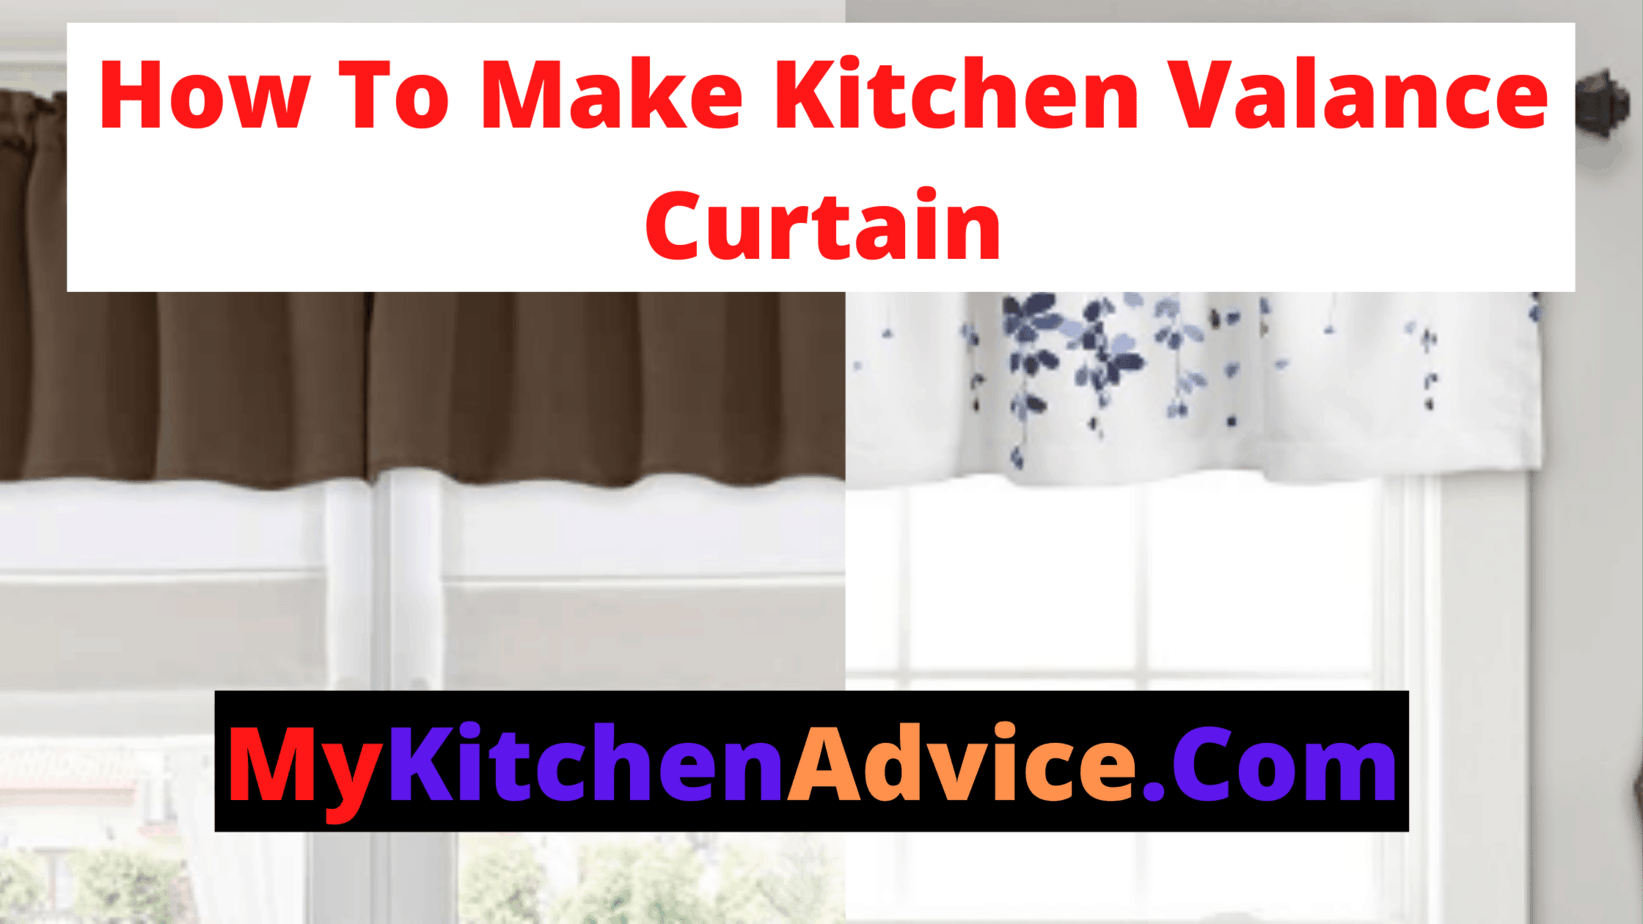 How To Make Kitchen Valance Curtains